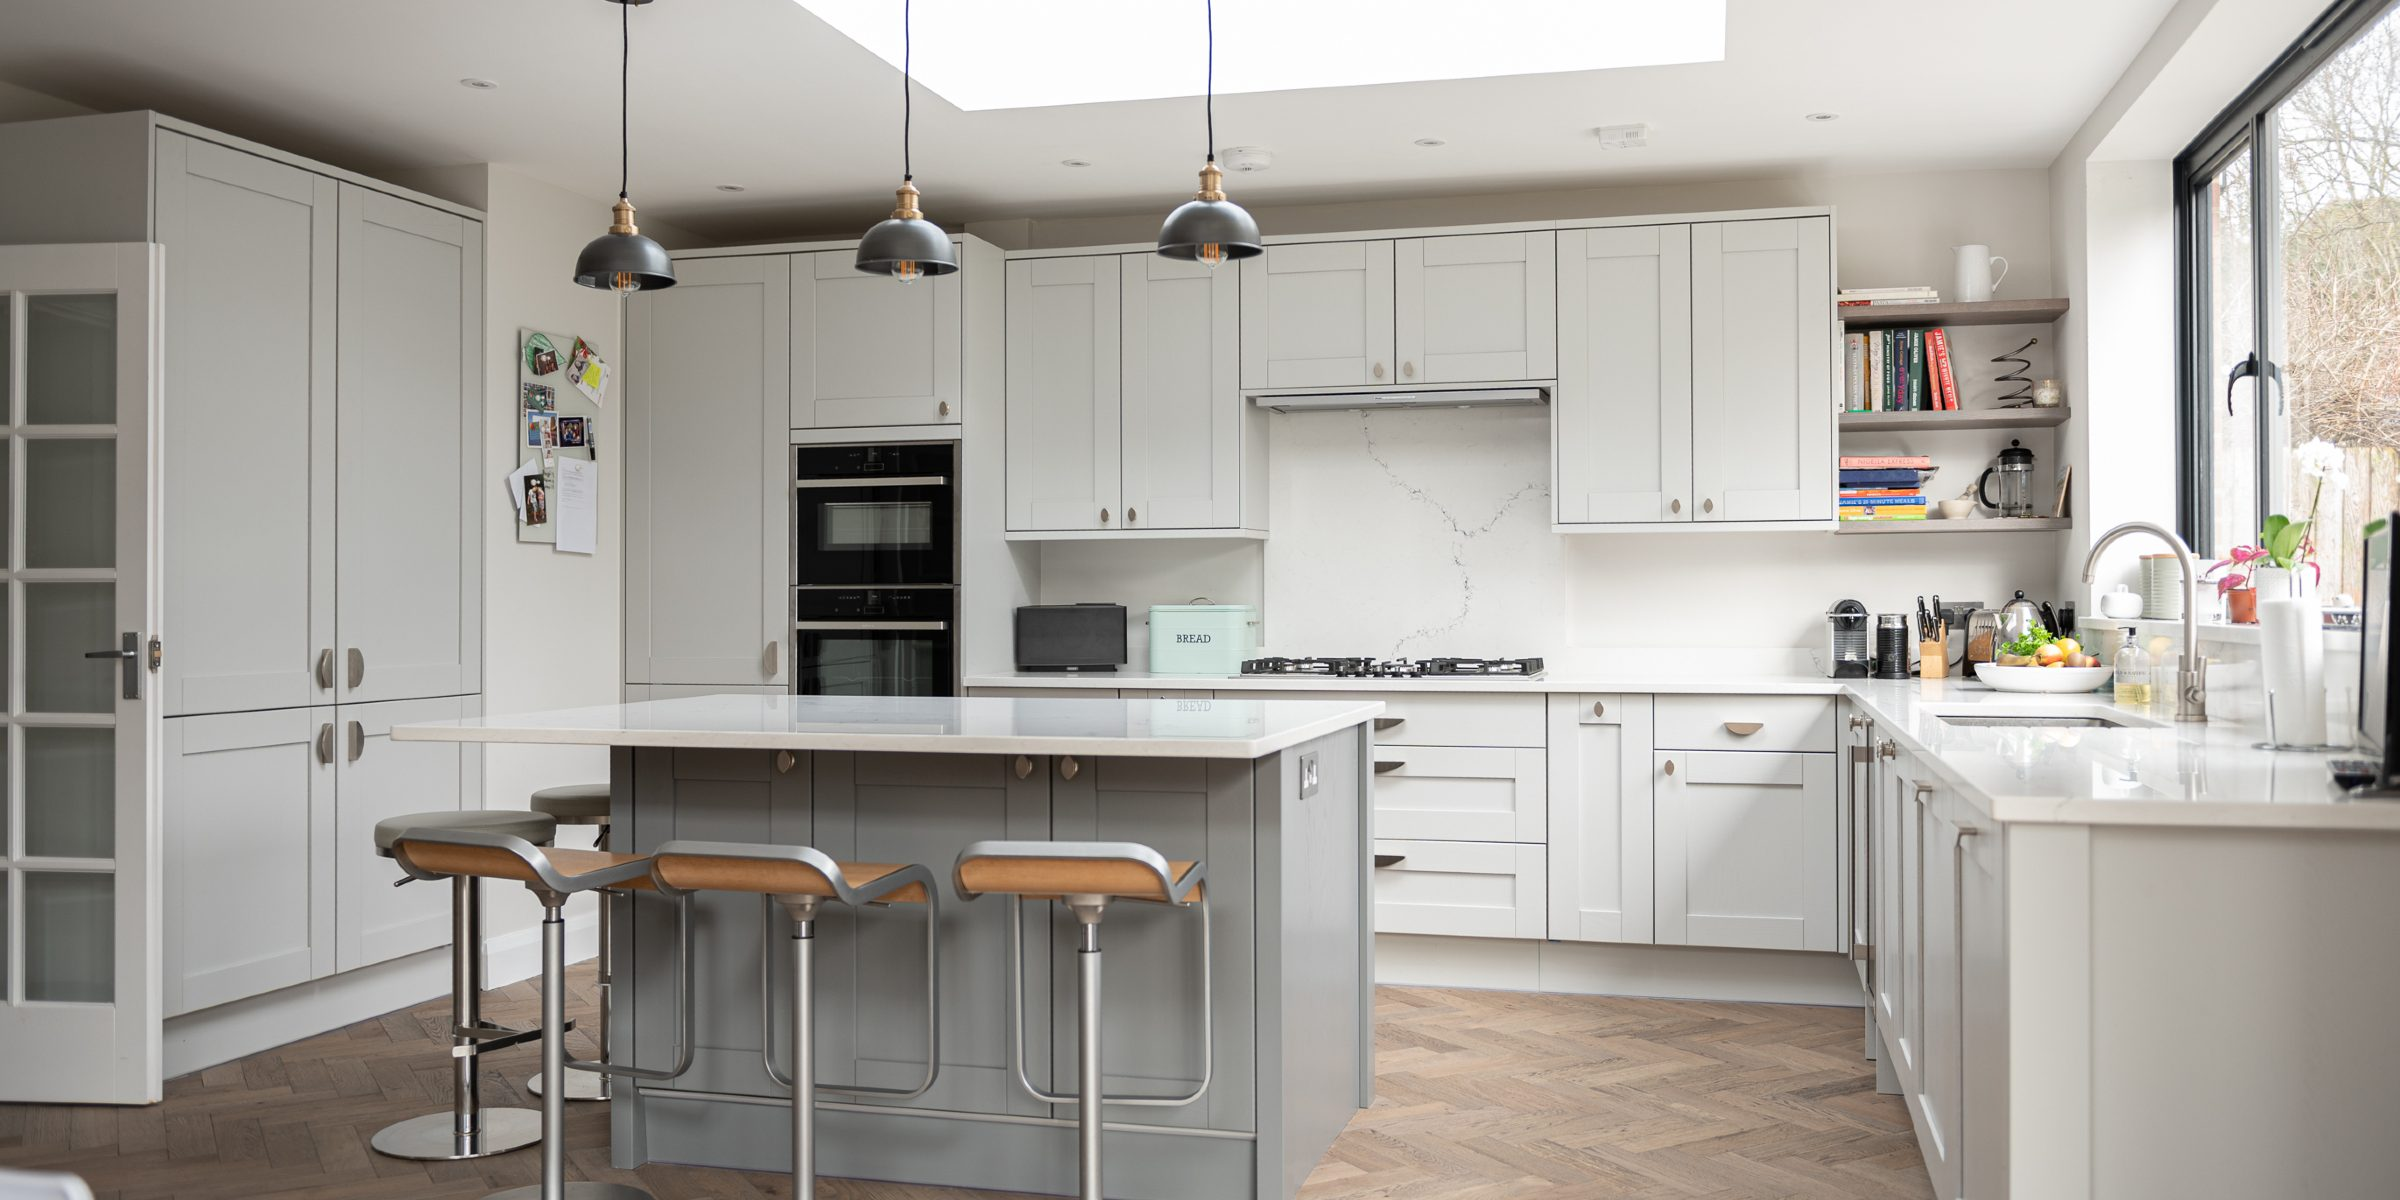 Kingston kitchen extension design